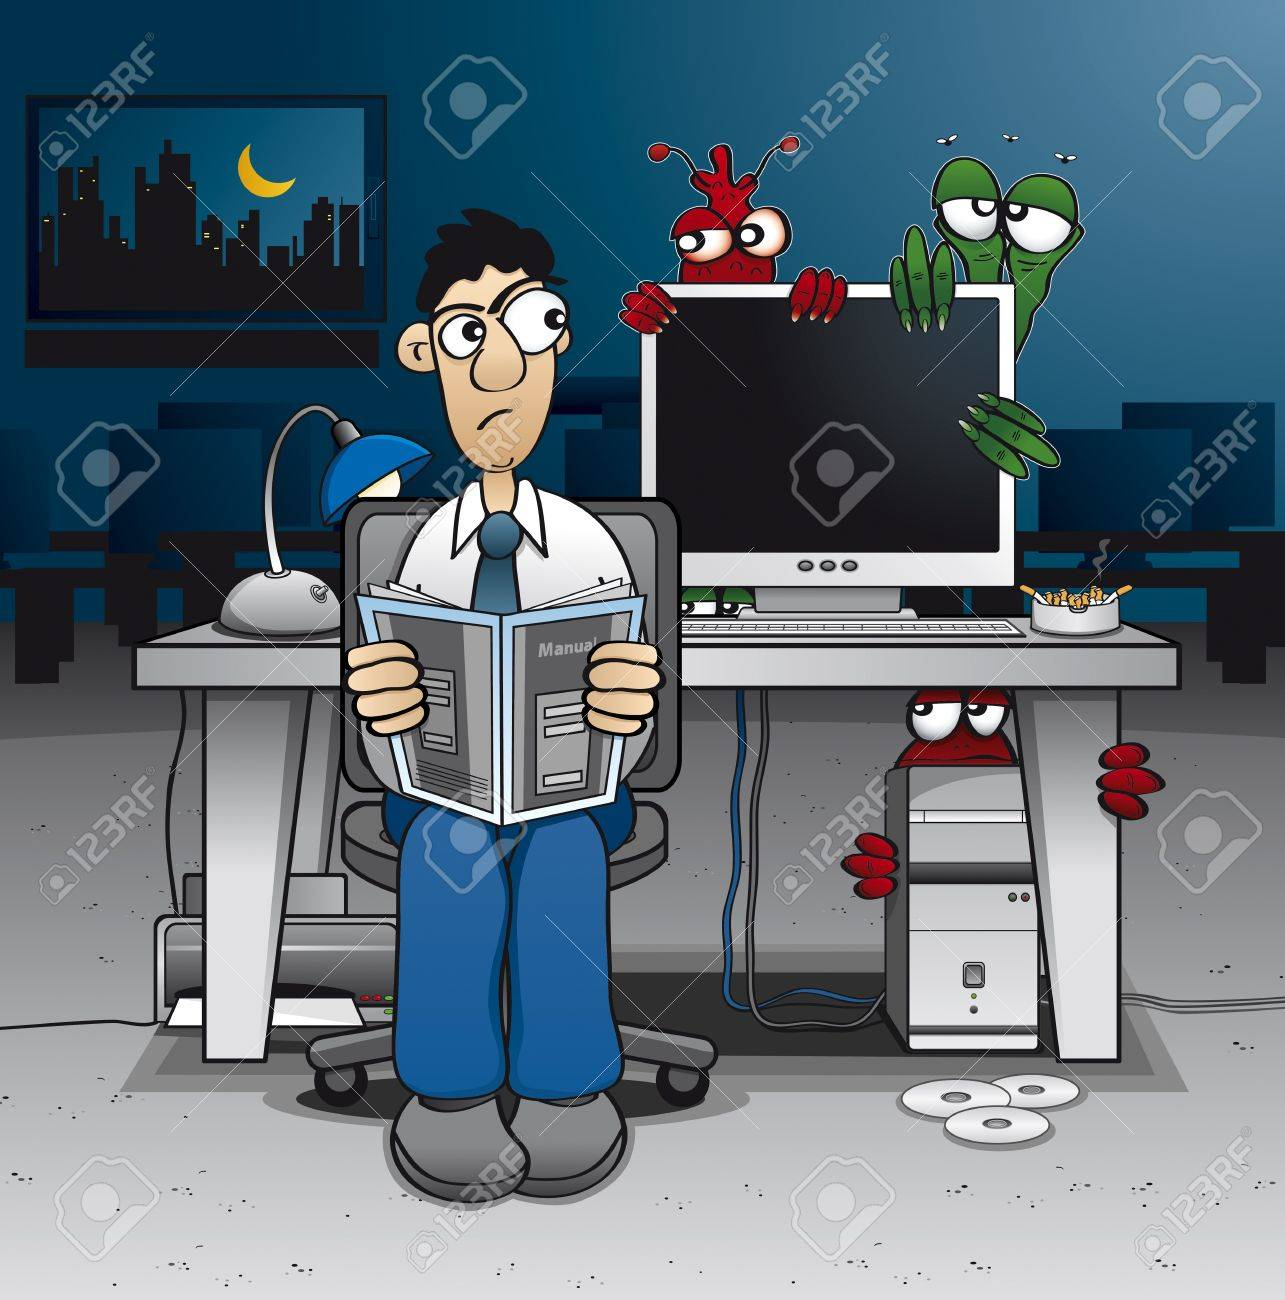 Computer administrator having trouble with some ugly viruses Stock Vector - 17222259